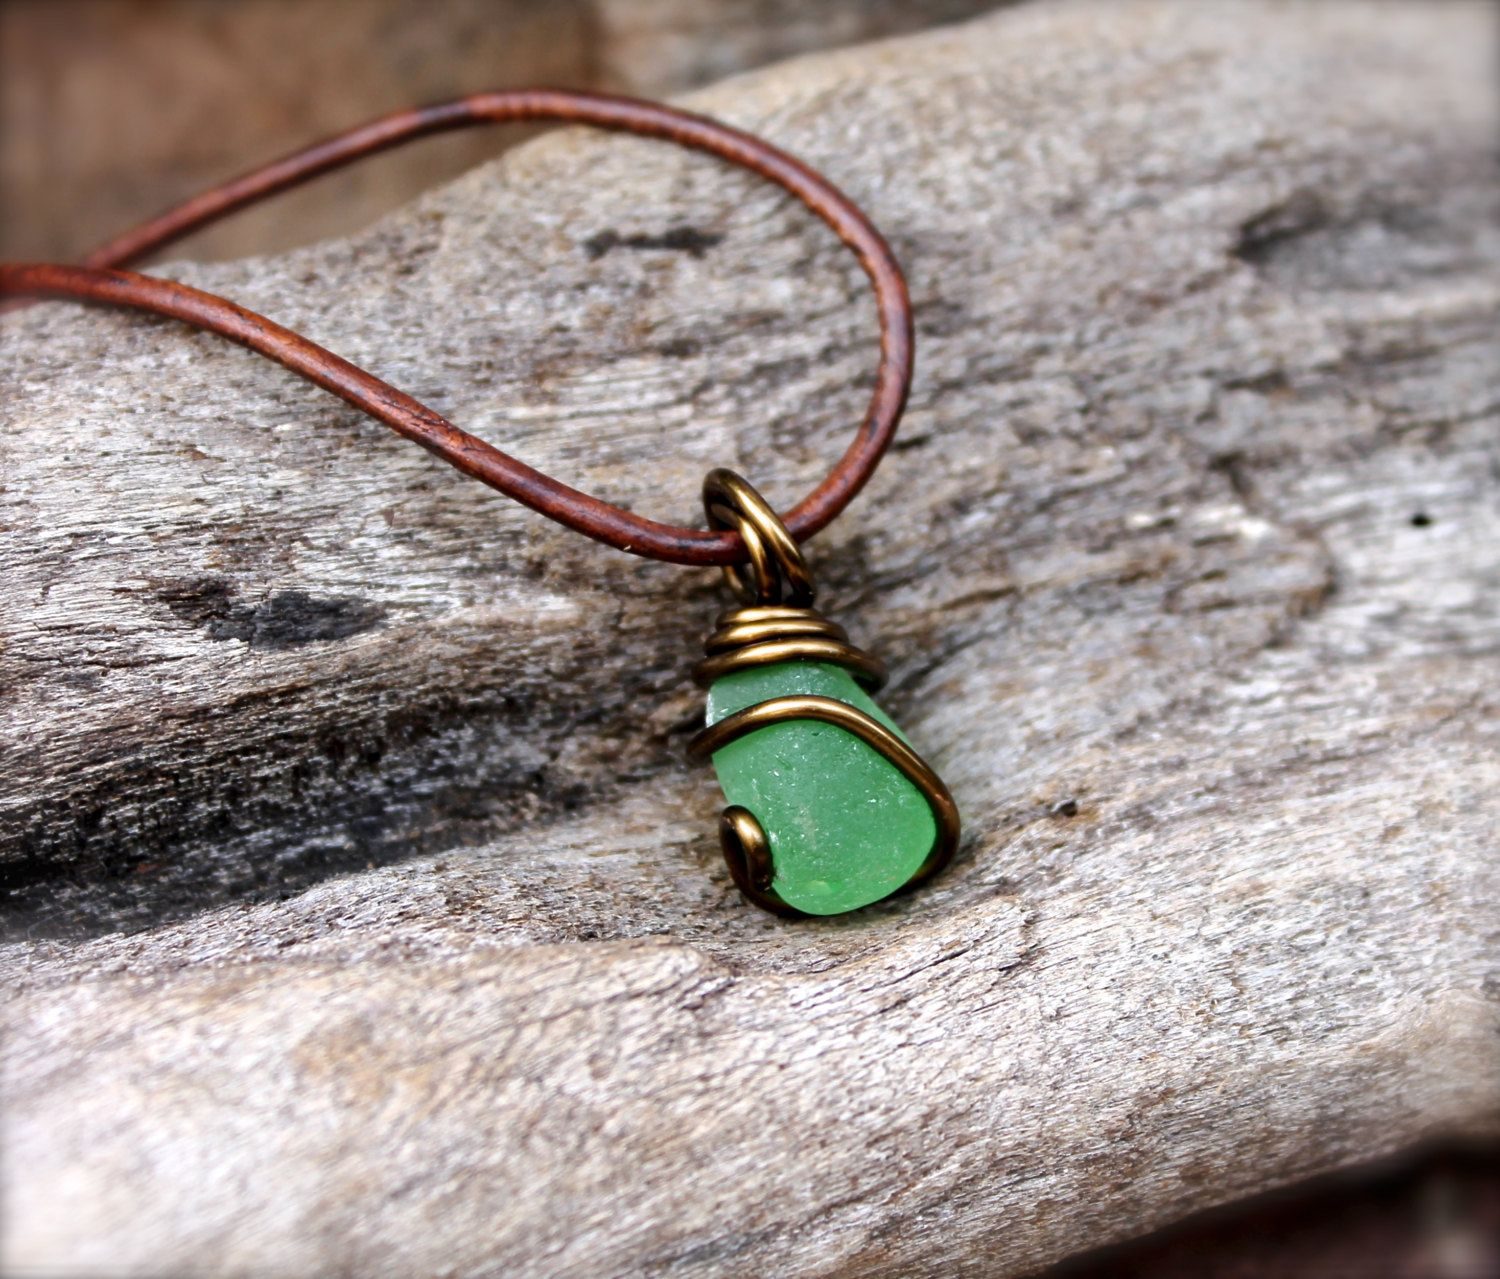 Sea Glass Necklace - Hawaiian Jewelry for Men - Leather Necklace for Men - Sea Glass Jewelry from Hawaii - Hawaii Ocean Inspired Necklace by MermaidTearsDesigns on Etsy https://www.etsy.com/listing/117754047/sea-glass-necklace-hawaiian-jewelry-for